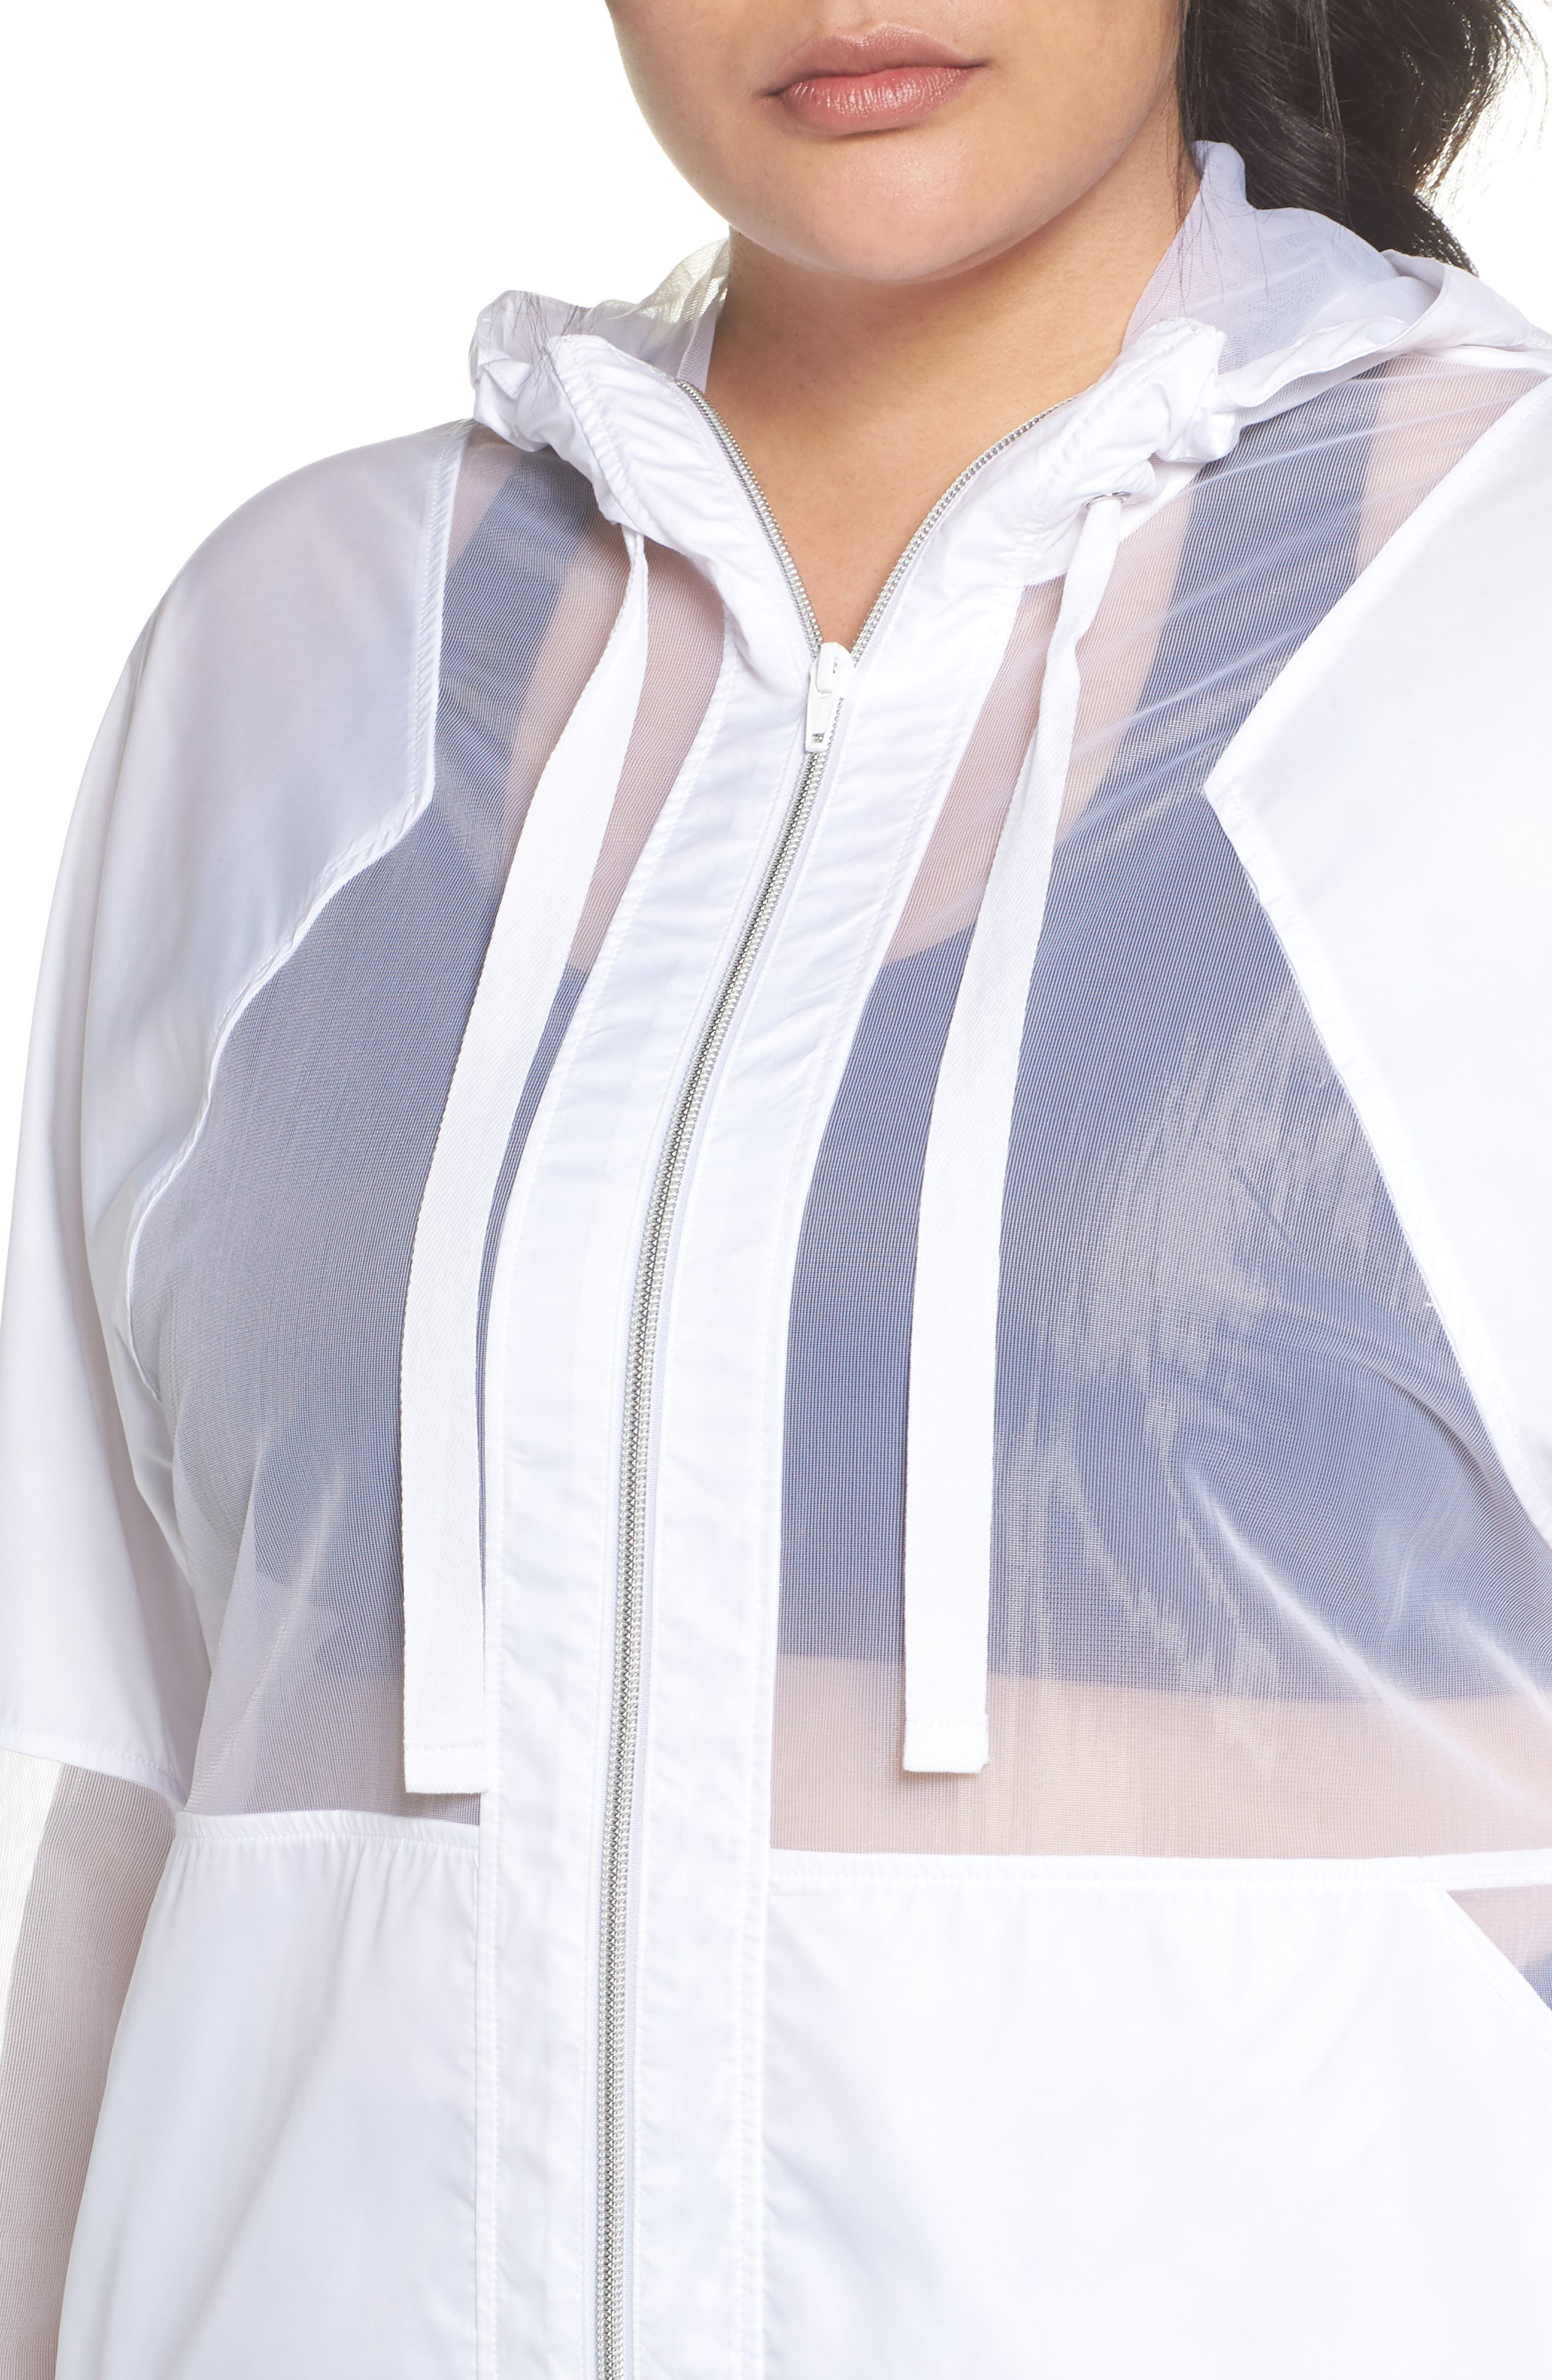 Sheer Mix Jacket,                             Alternate thumbnail 4, color,                             100